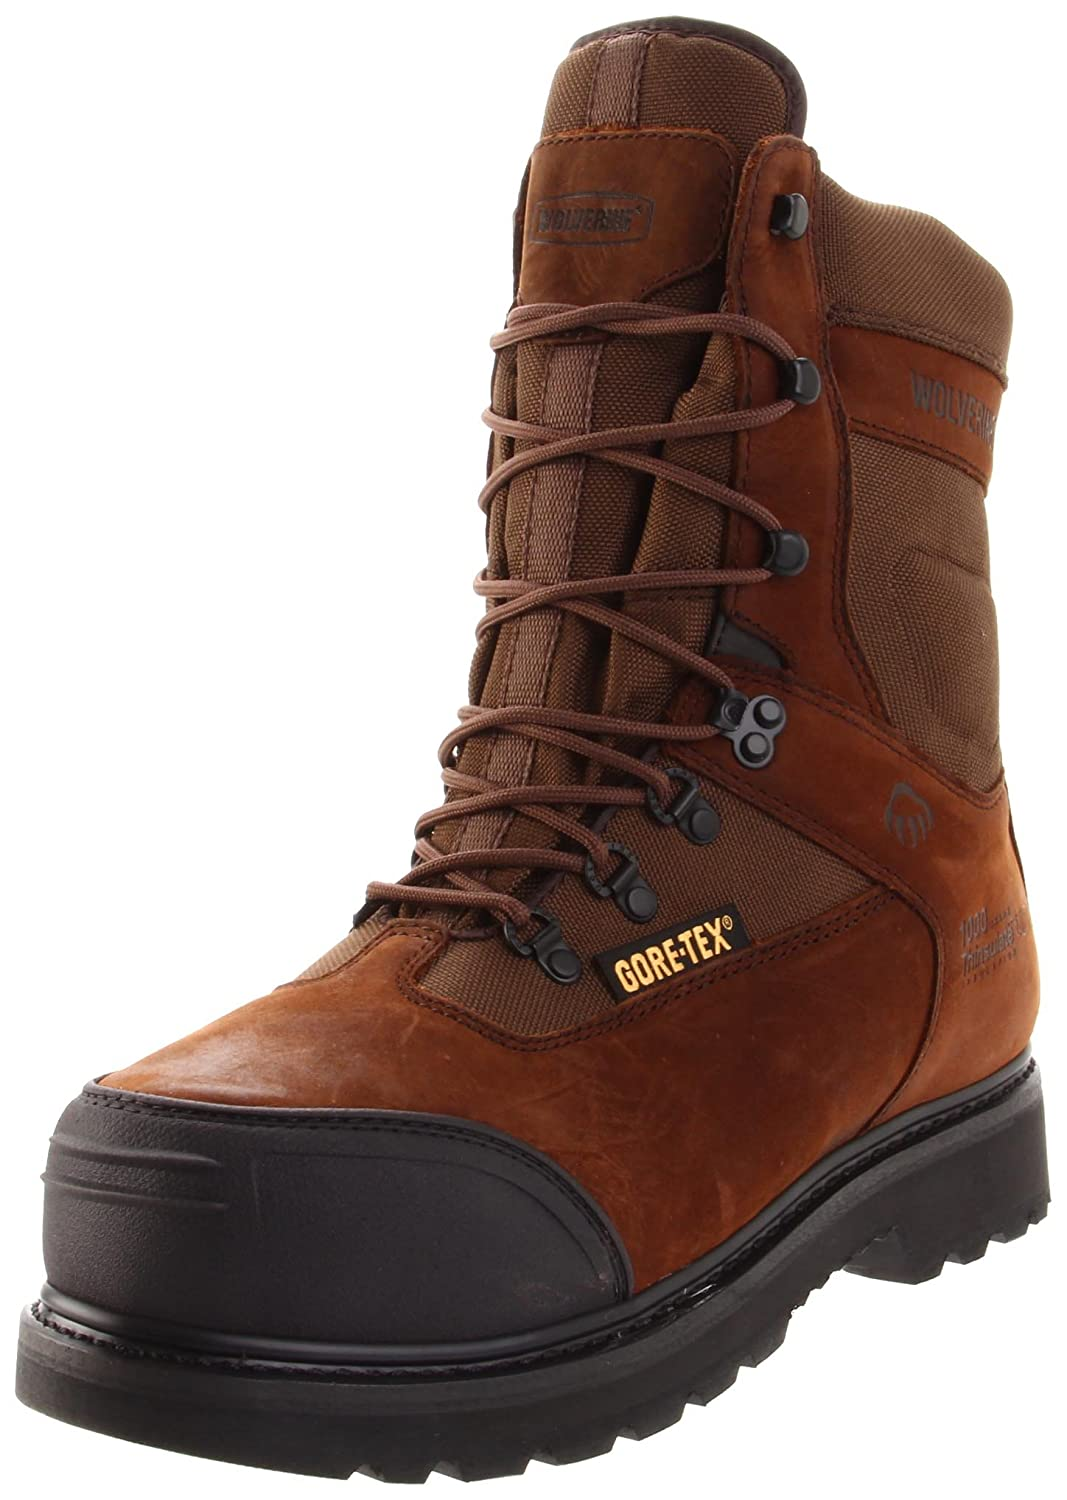 Wolverine Men's W05551 Big Sky 8-Inch Hunting Boot BIG SKY GORE 8-M